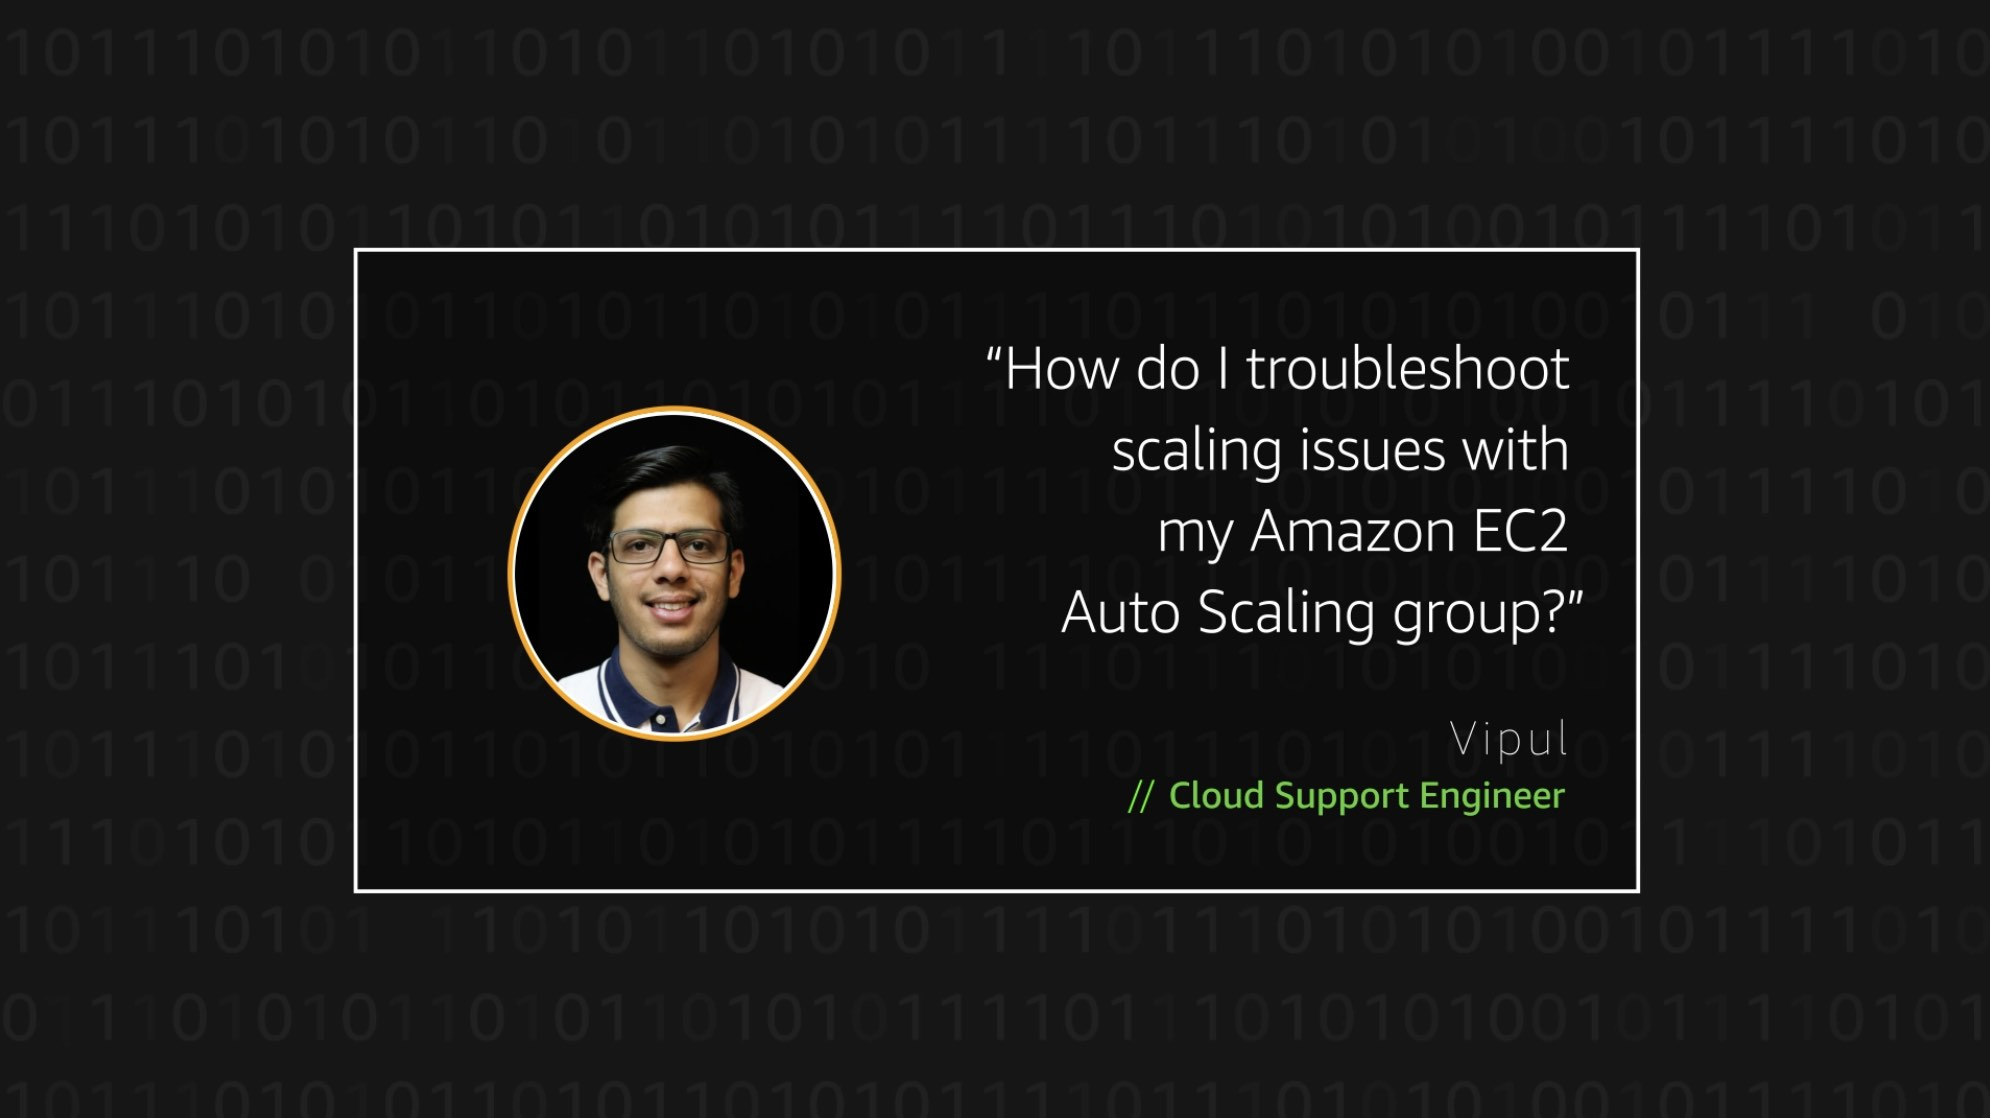 Watch Vipul's video to learn more